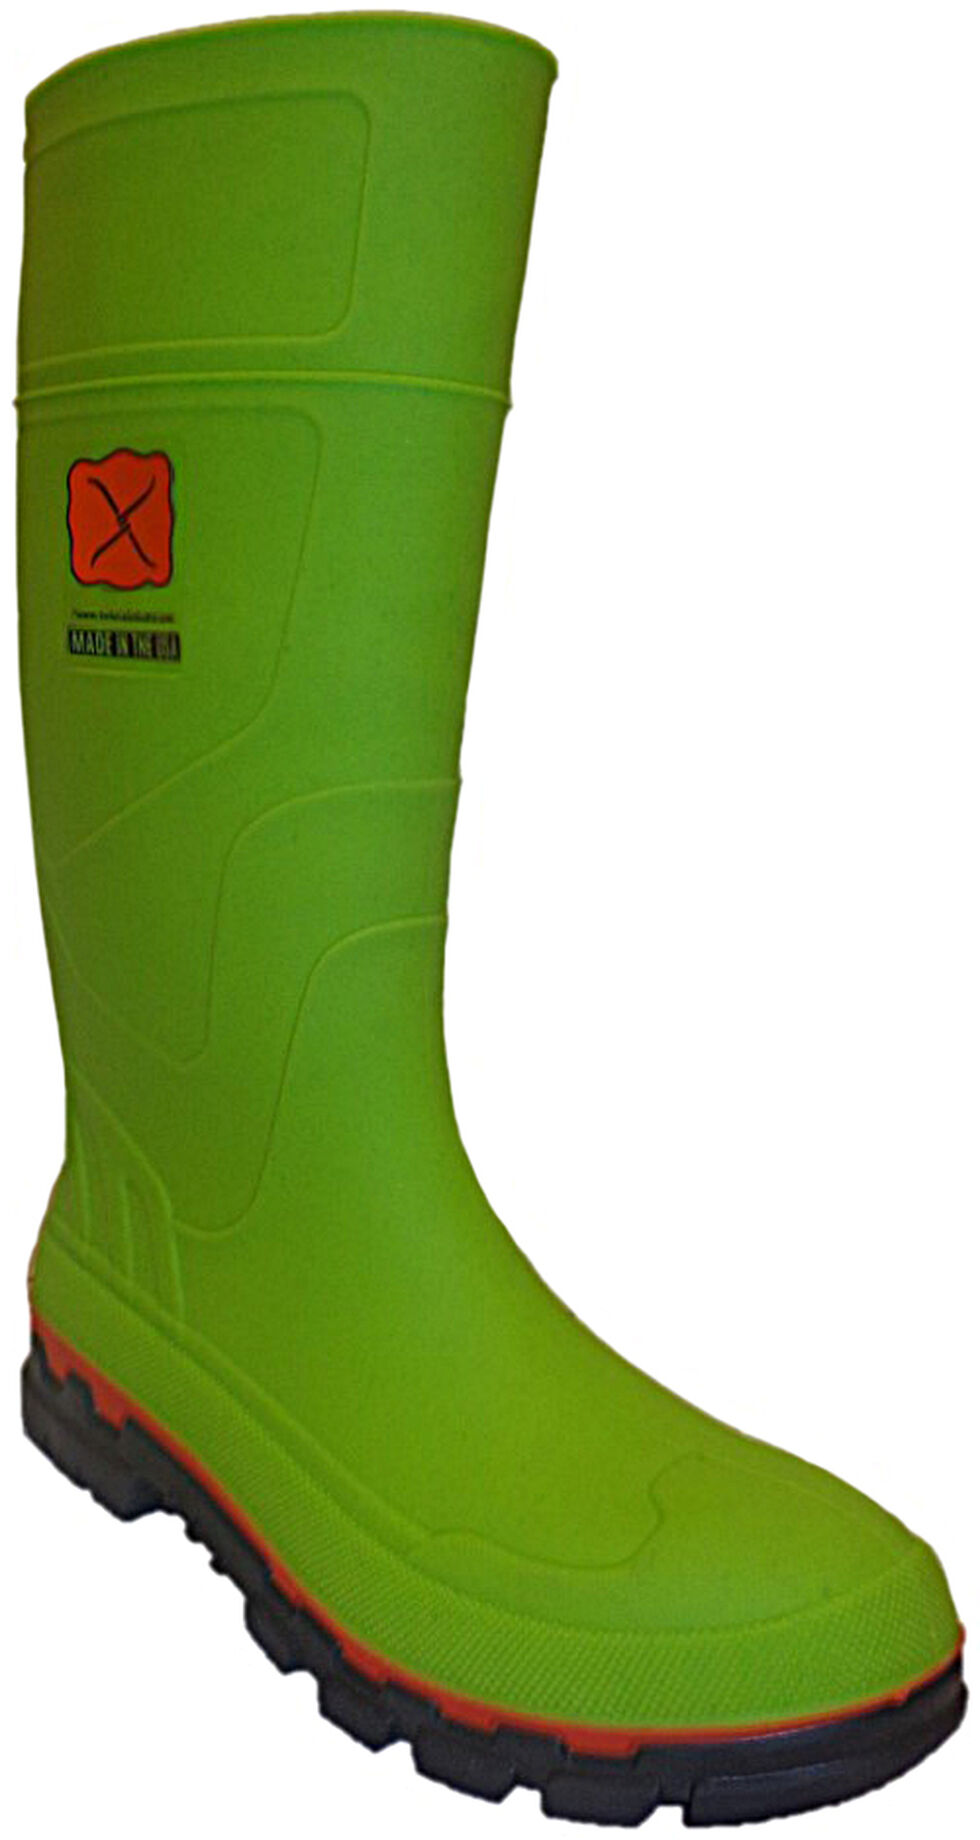 Twisted X Men's Mud Work Boots - Steel Toe, Lime, hi-res